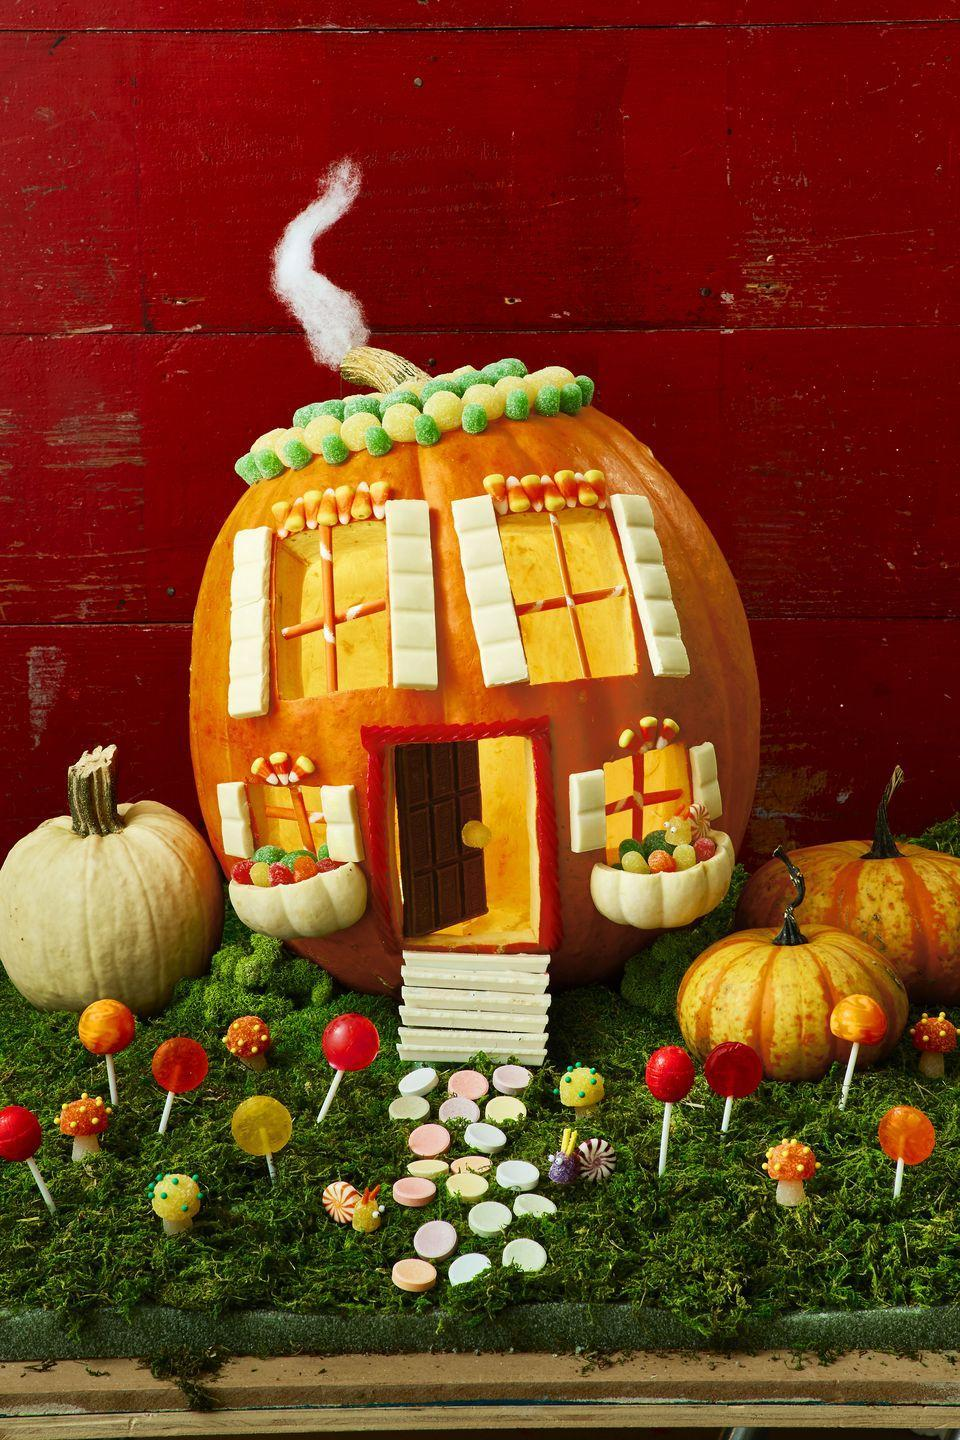 <p>Carve a round opening on top of pumpkin and hollow out insides. Carve out 3 rectangles on front for windows and doors. Place pumpkin on a slight hill of craft foam covered in moss. Cut off top of a white Jack Be Little pumpkin, then cut remaining pumpkin in half to form window boxes. Use T-pins to attach to house. Glue on details like polyester batting for smoke, gumdrops for roof, and white chocolate for shutters. Cut sugar straws into sections to fit snugly into window as frames. For door, glue a gumdrop doorknob to the front of a chocolate bar, then place in licorice- adorned doorway. Use craft foam to create a small hill, then layer pieces of white chocolate on top for steps.</p>